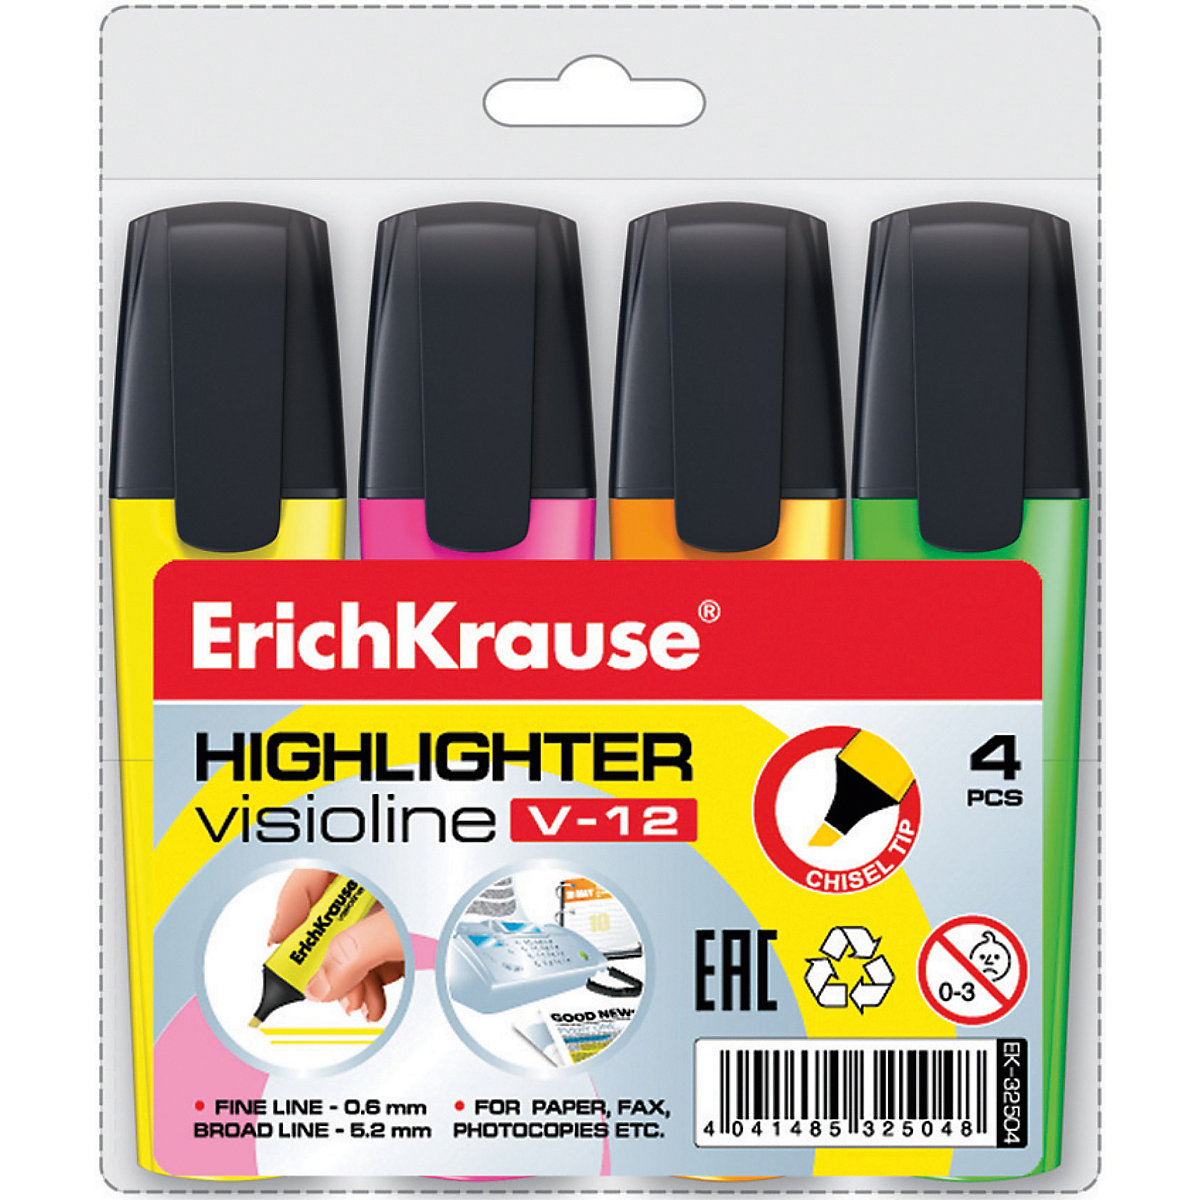 ERICHKRAUSE Stationery Set 5543301 school office pencils geometric set school enrolment markers MTpromo fountain pen shark style duke 911 2 colors to choose office and school stationery free shipping